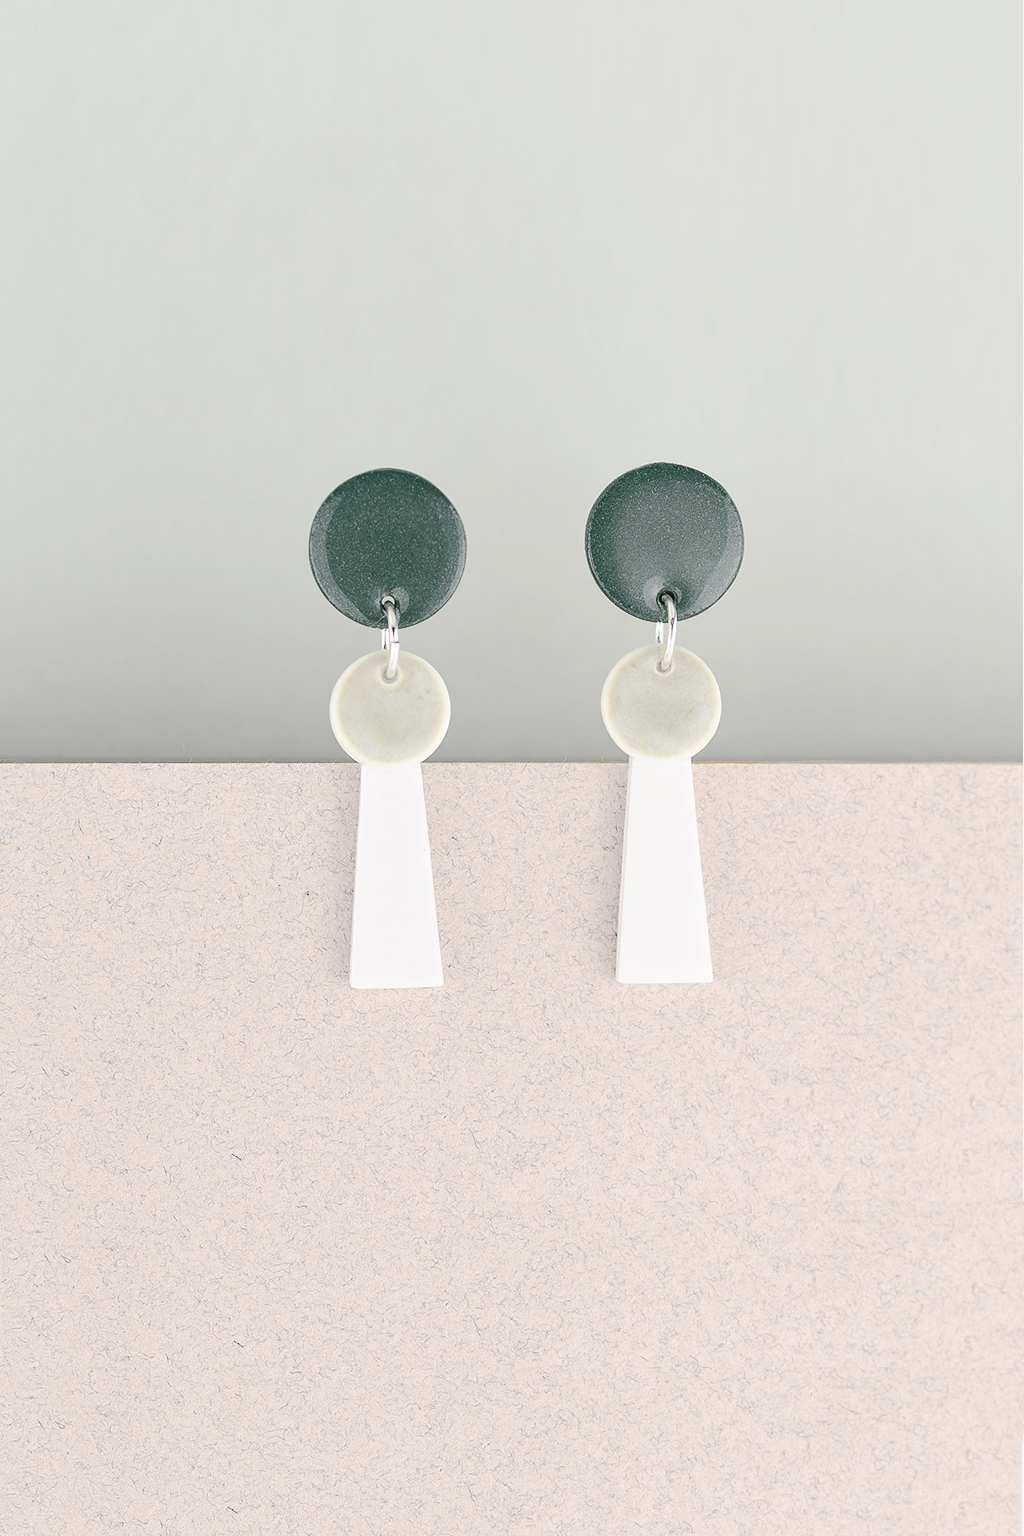 Erin Lightfoot-Small White Tassel Earrings - Green-Mott and Mulberry